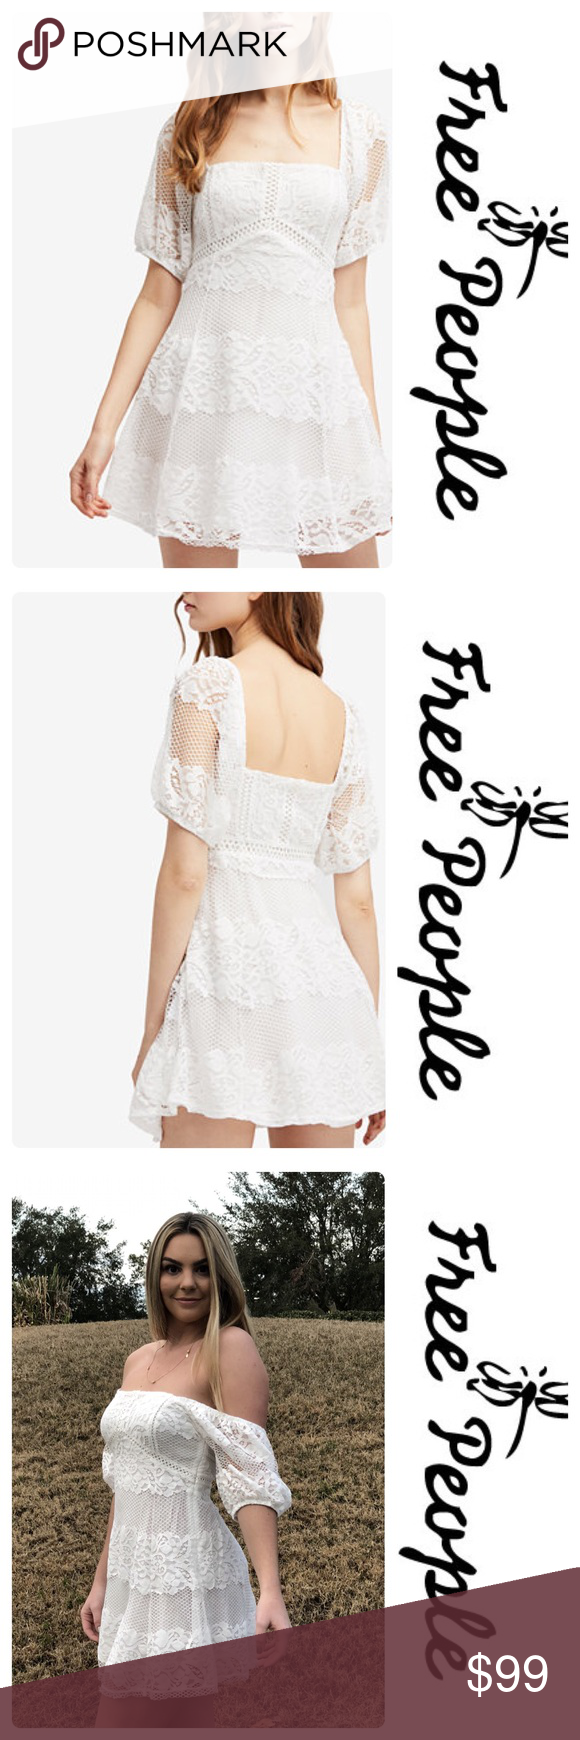 """a2a6cd66f71 Free People """"Be Your Baby Lace Mini"""" Dress Ivory New with tags white Free"""